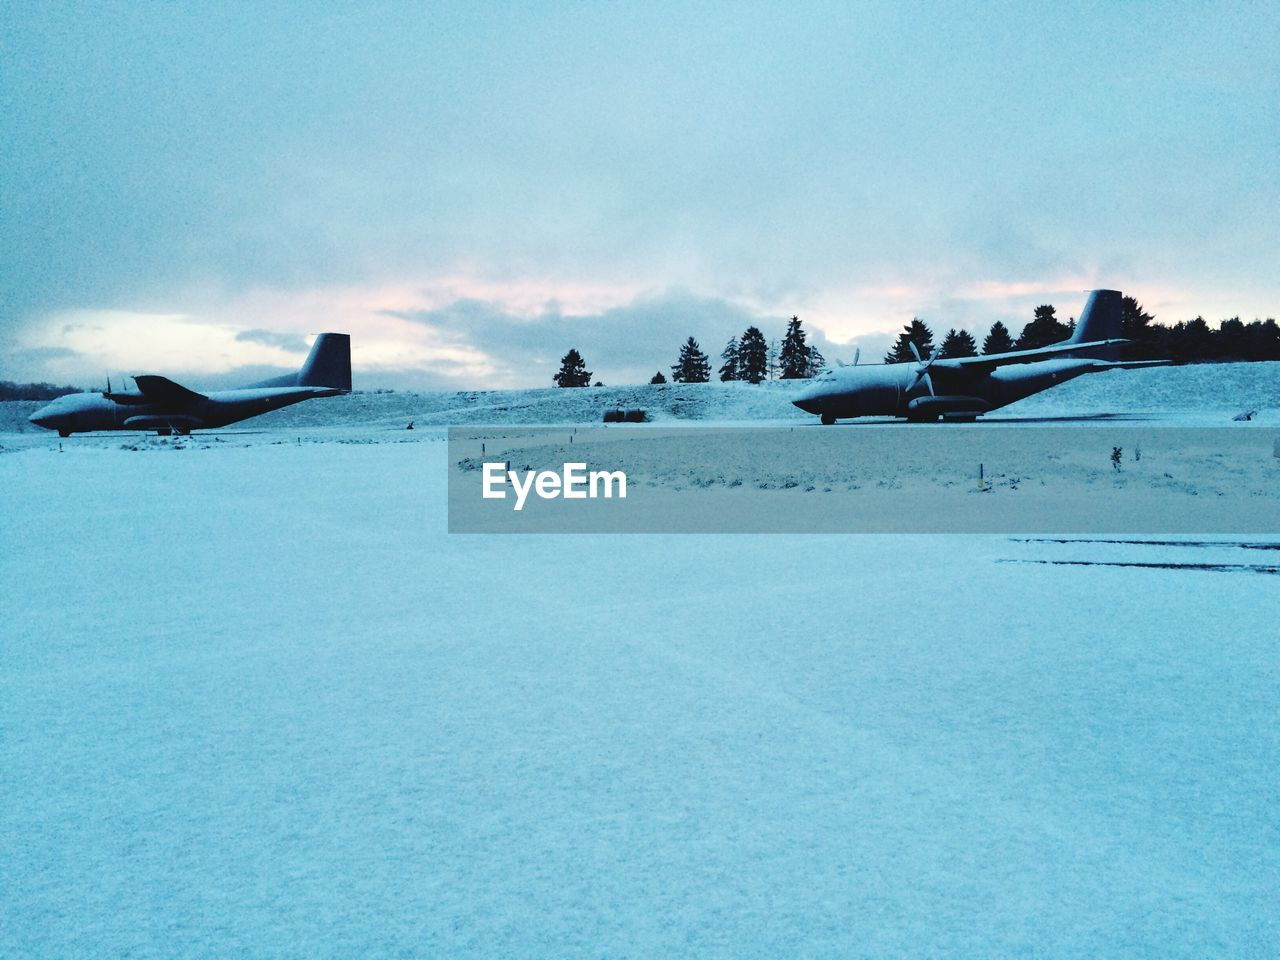 Airplanes On Snowy Airport Runway Against Cloudy Sky At Dusk